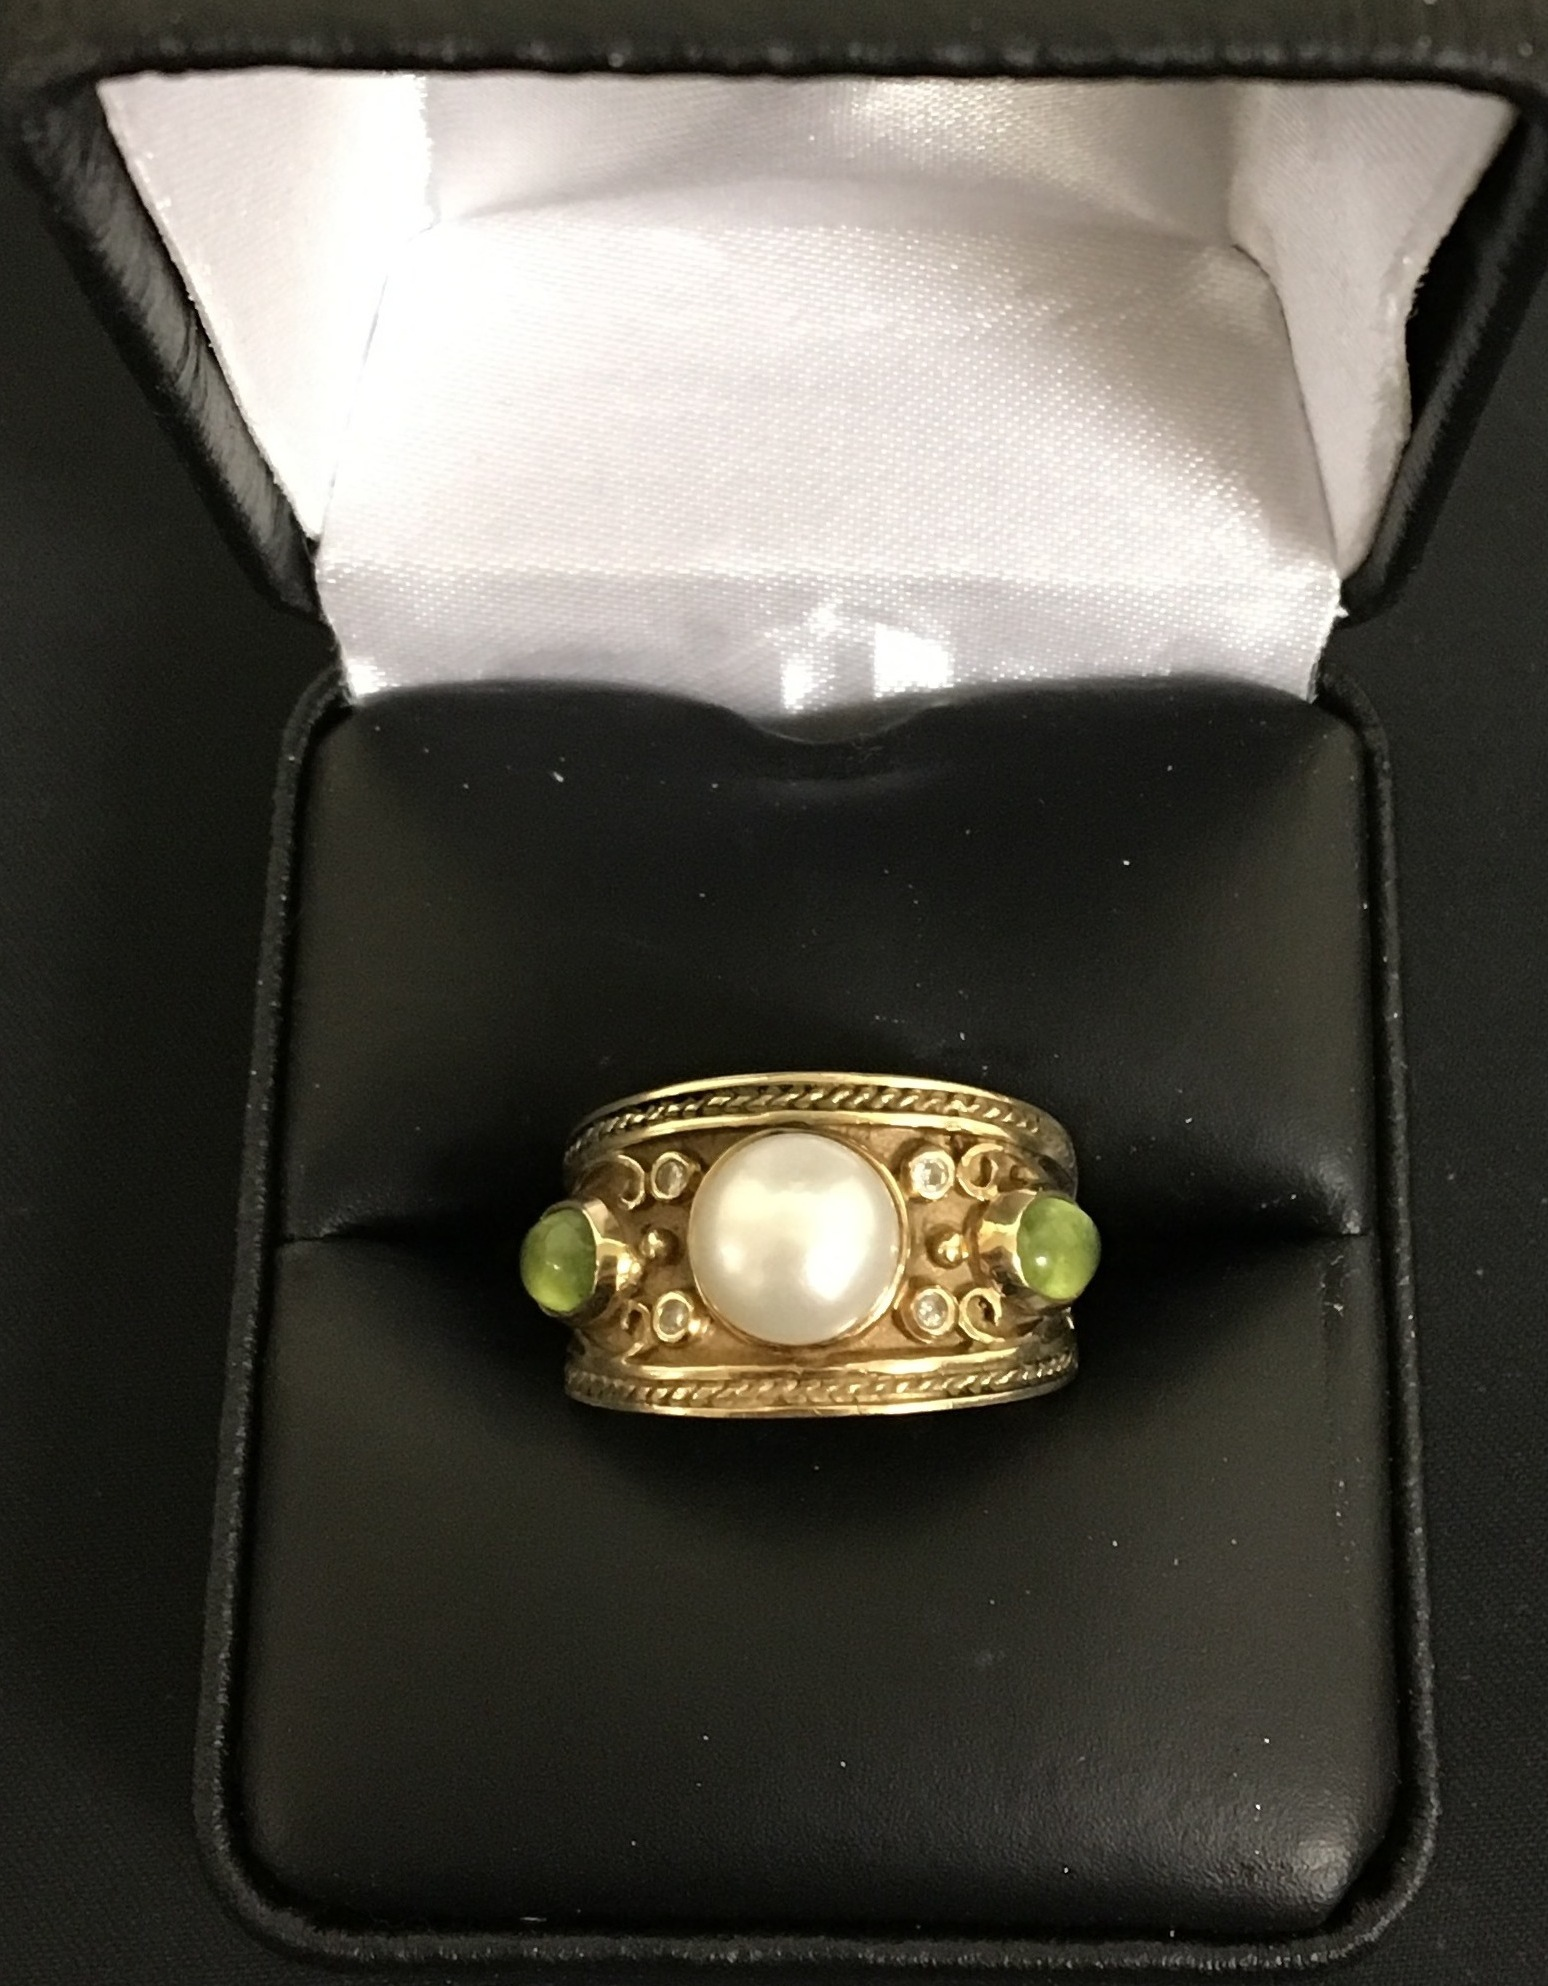 14KT YELLOW GOLD BAND WITH WHITE PEARL GREEN CHIPS W/TINY DIAMONDS. DWT 5.26